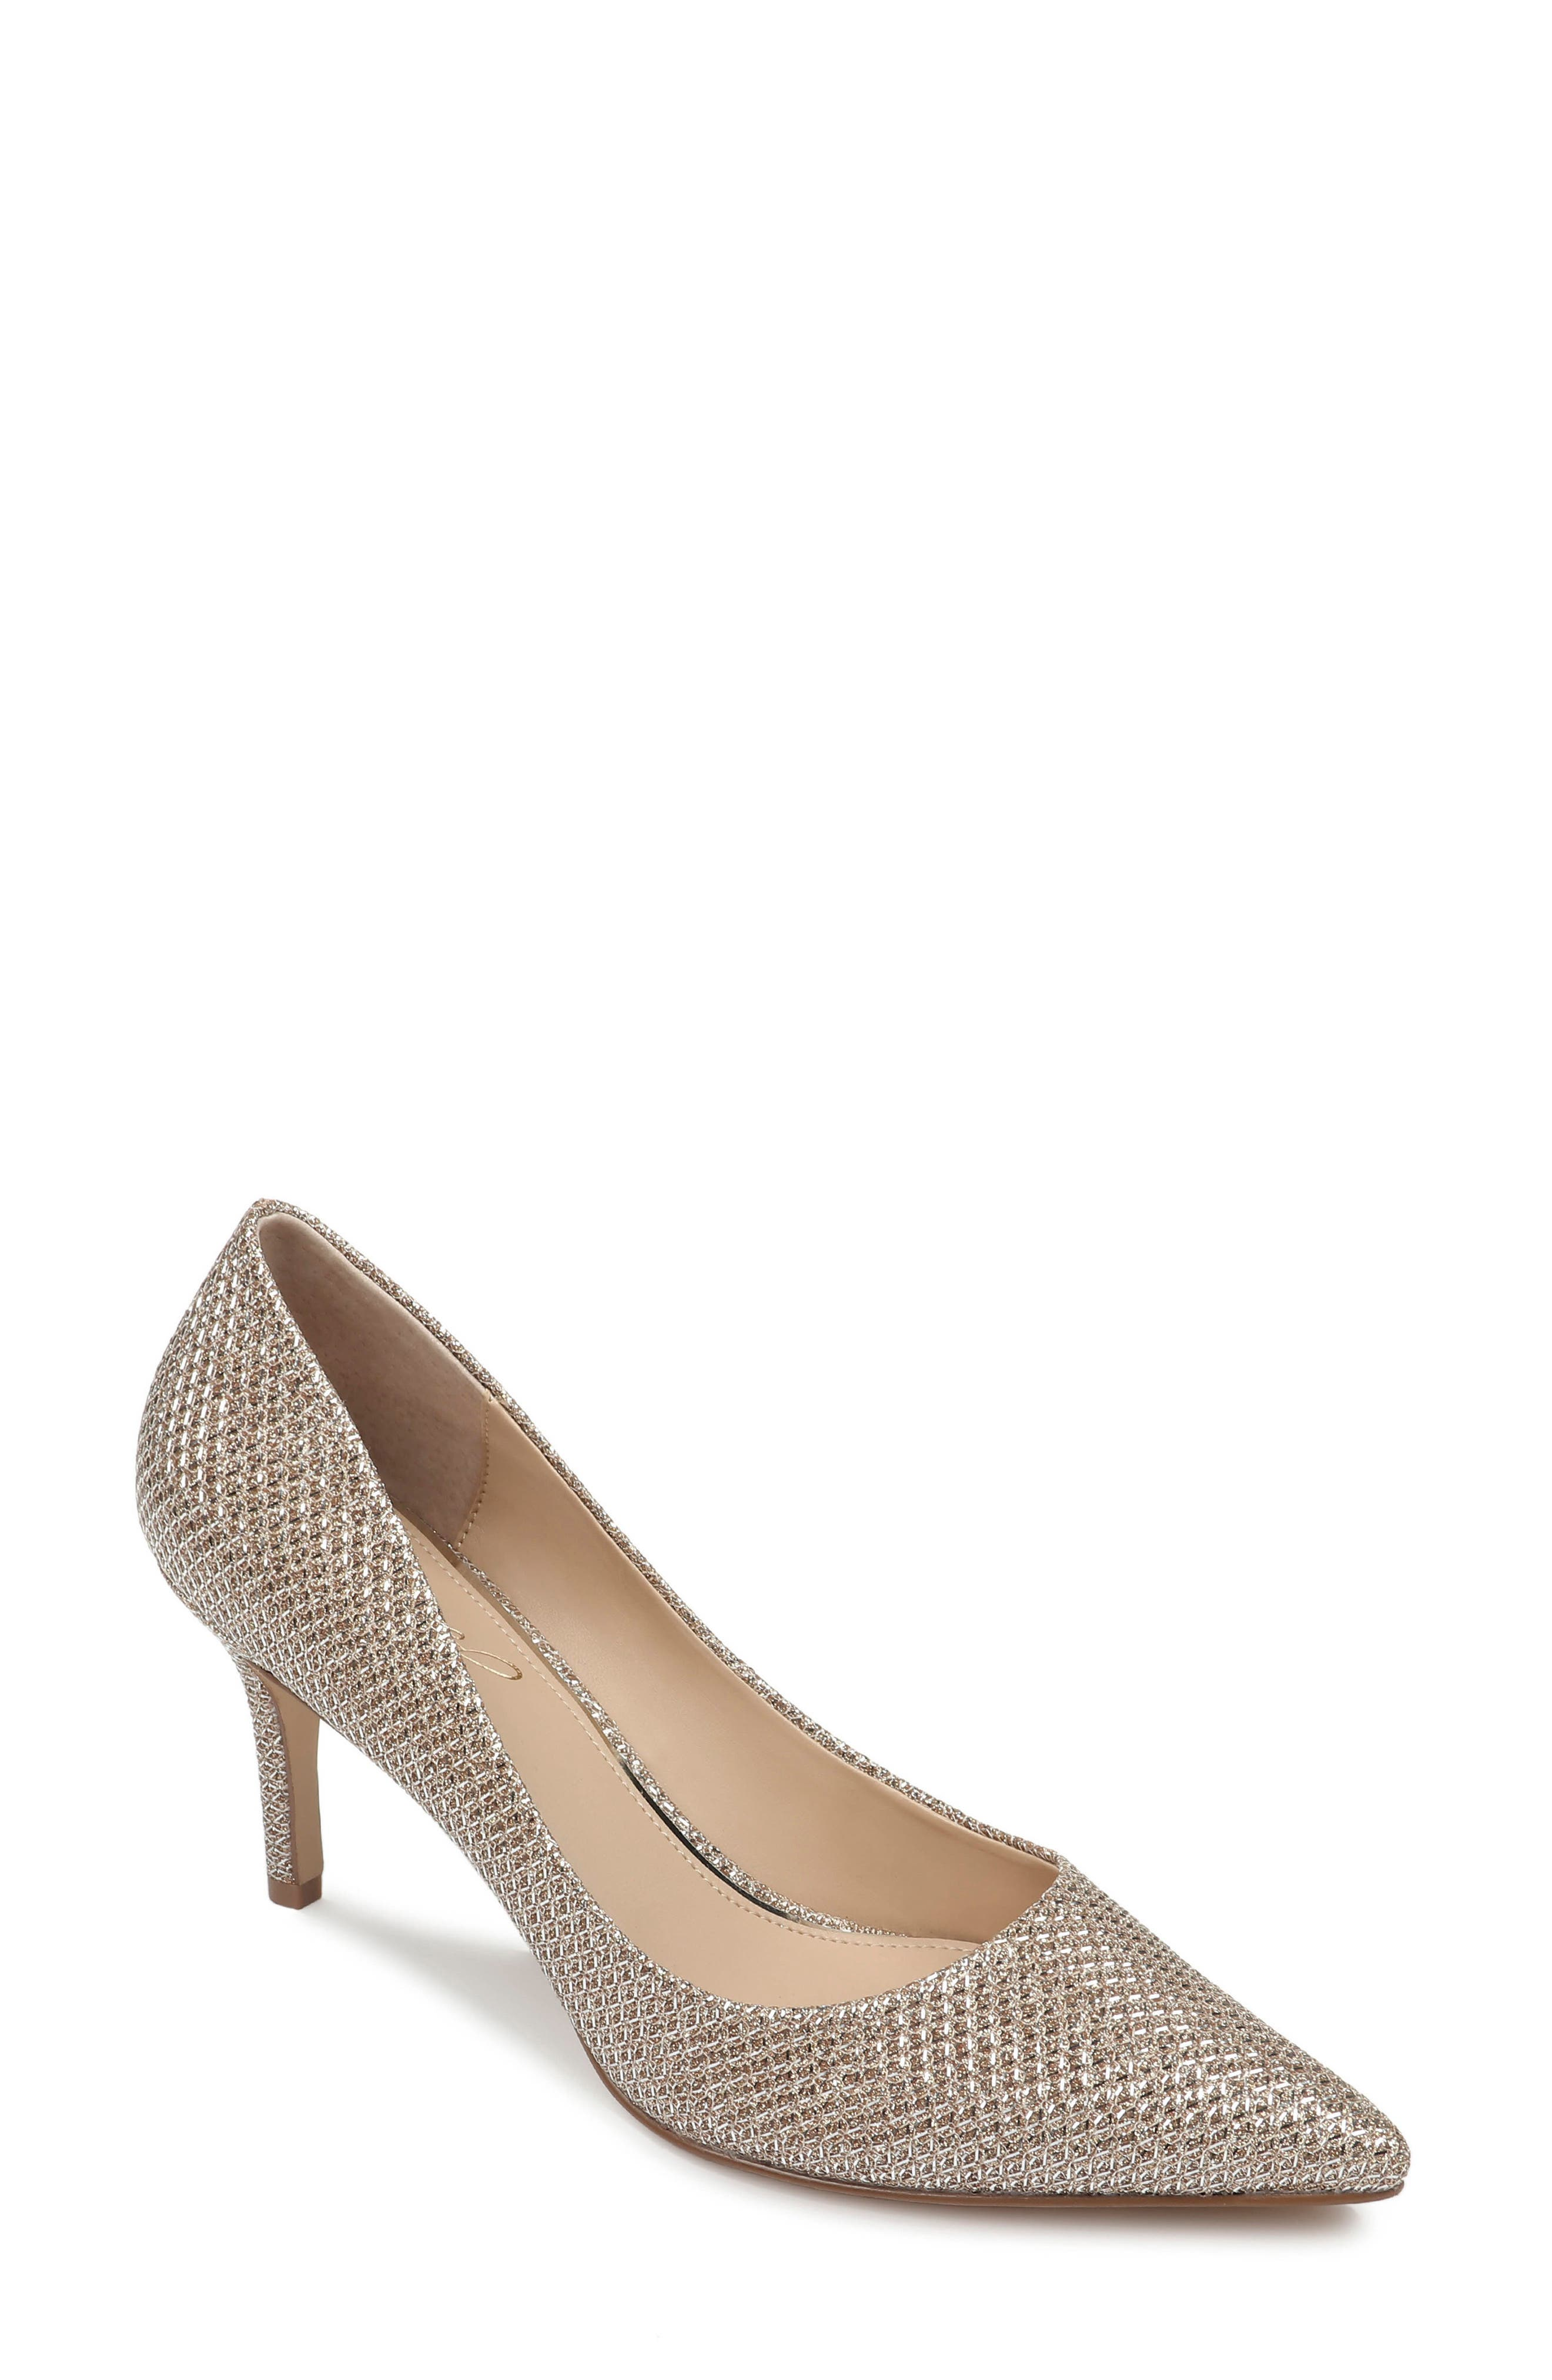 Rudy Pointed Toe Pump